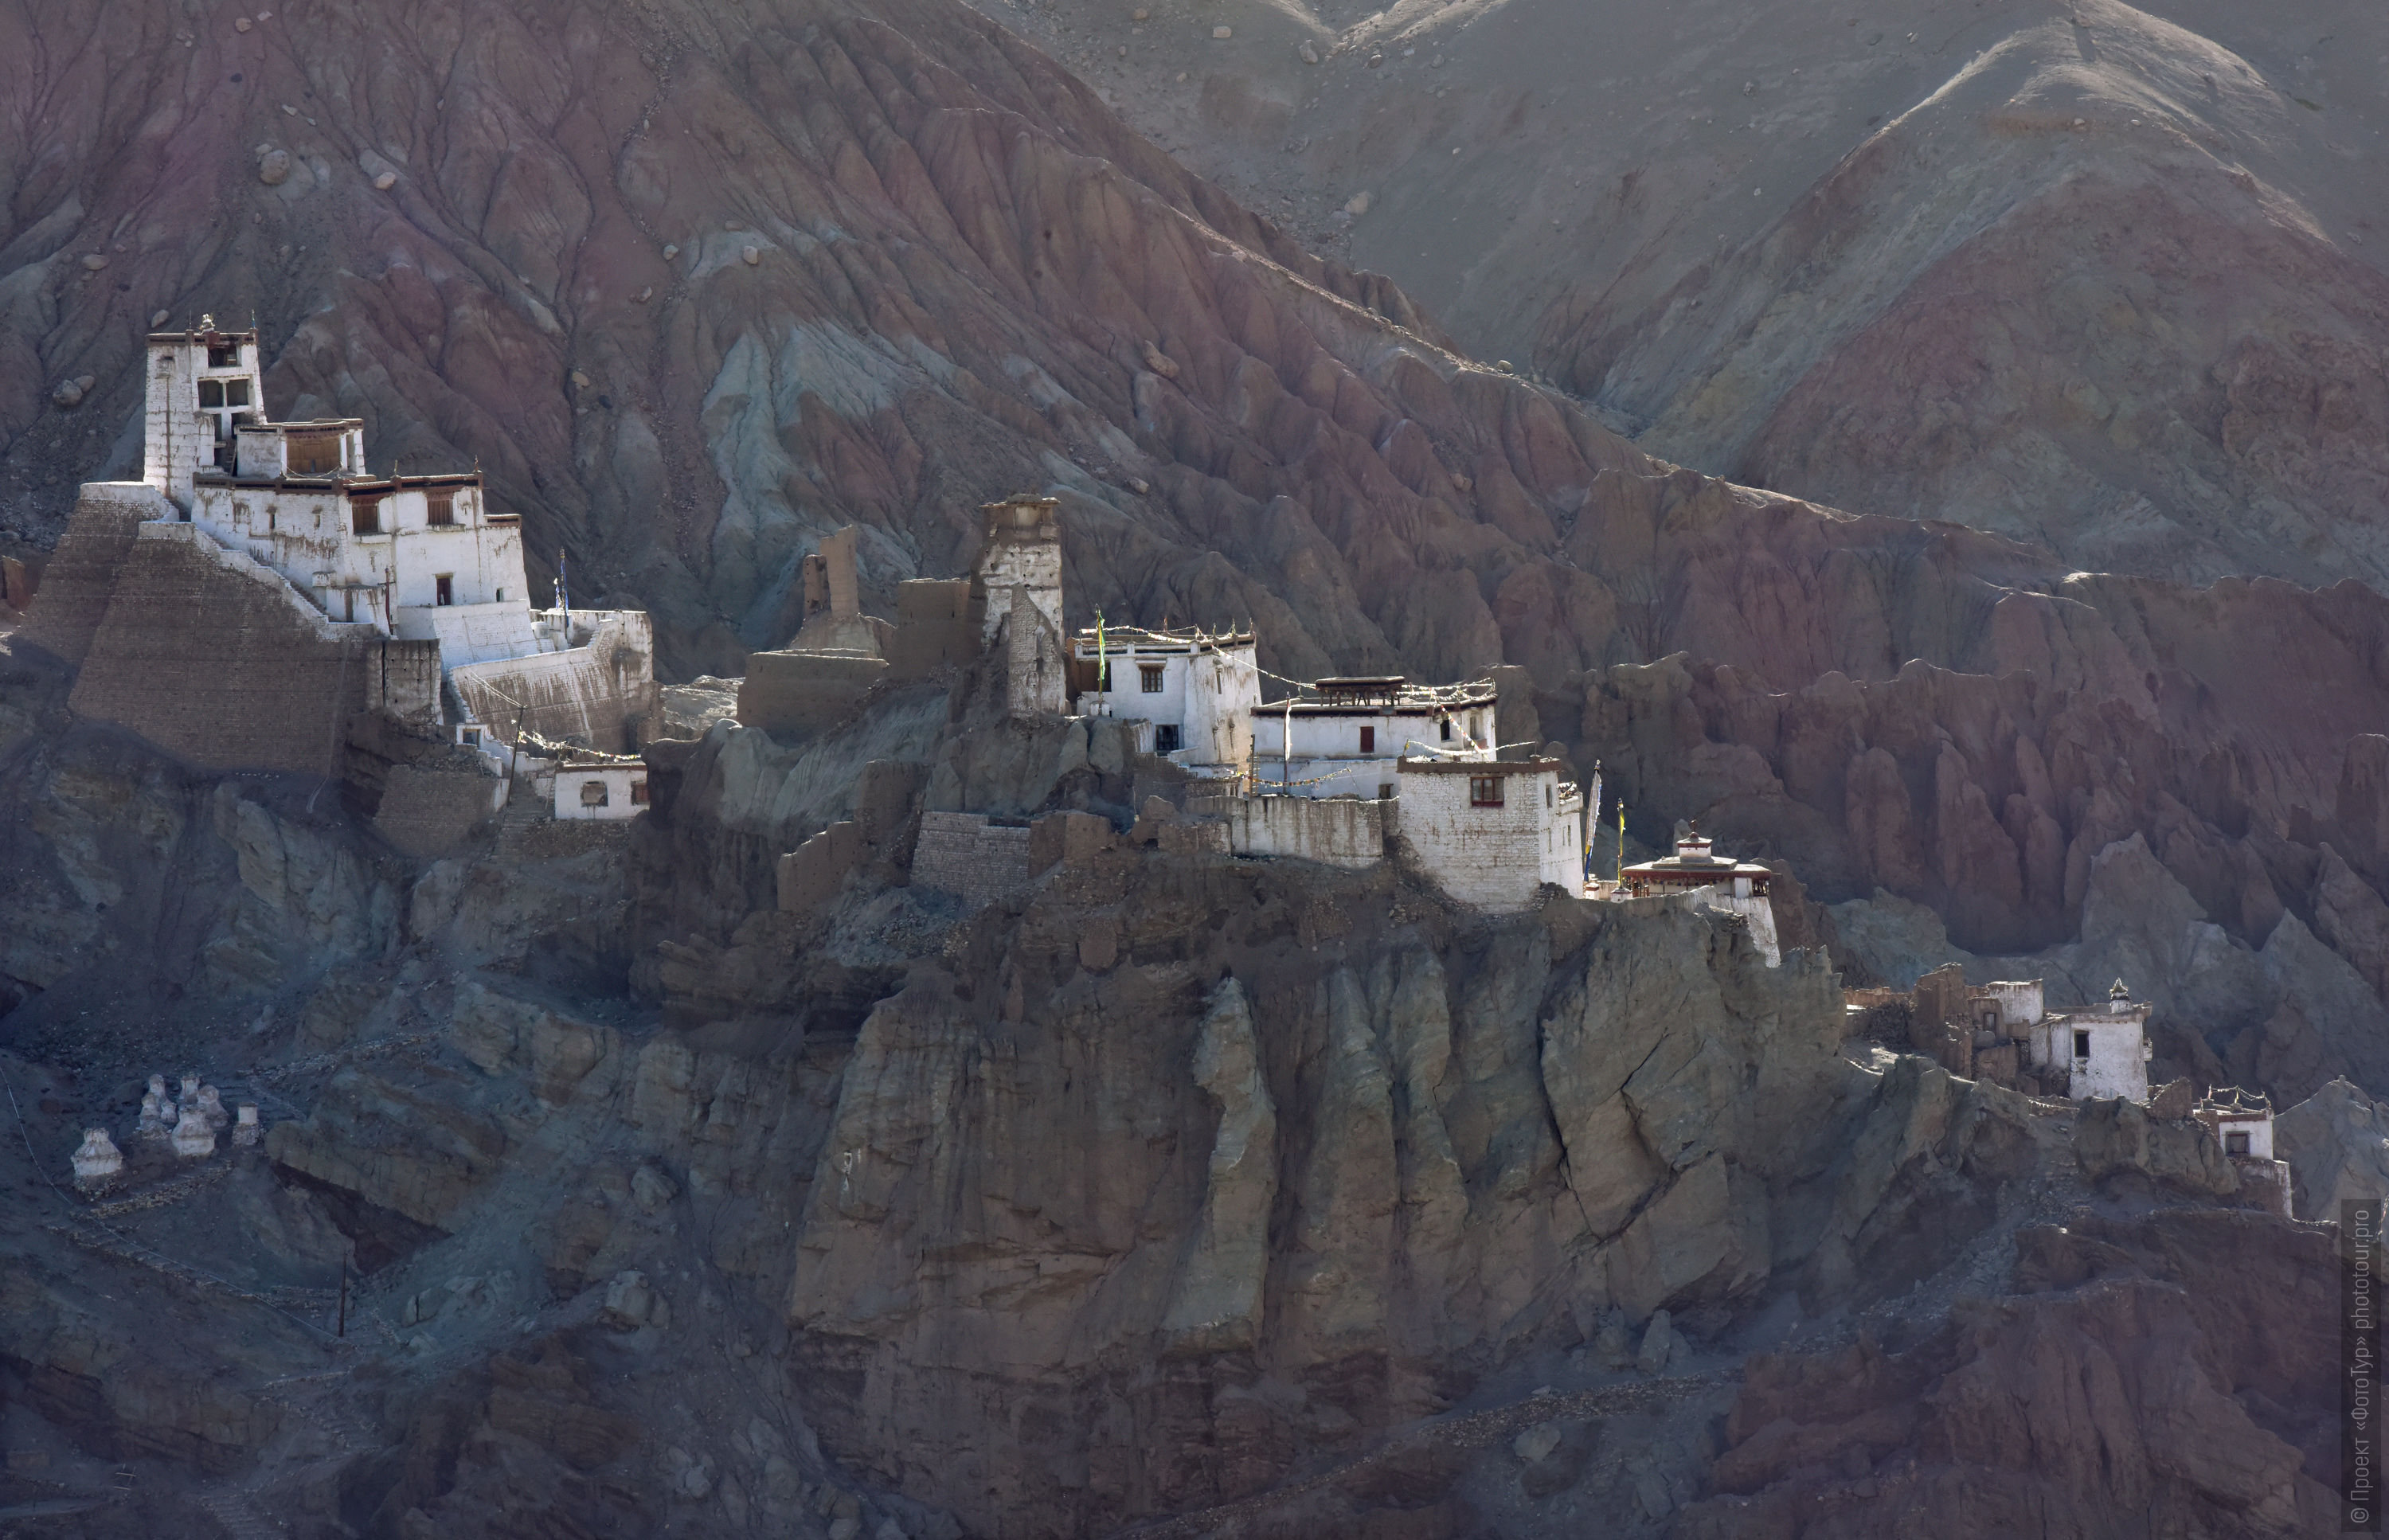 The Basco Monastery. Tour for artists in Tibet: Watercolor-1: Watercolor painting in Ladakh with Pavel Pugachev, 04.08. - 13.08. 2019.